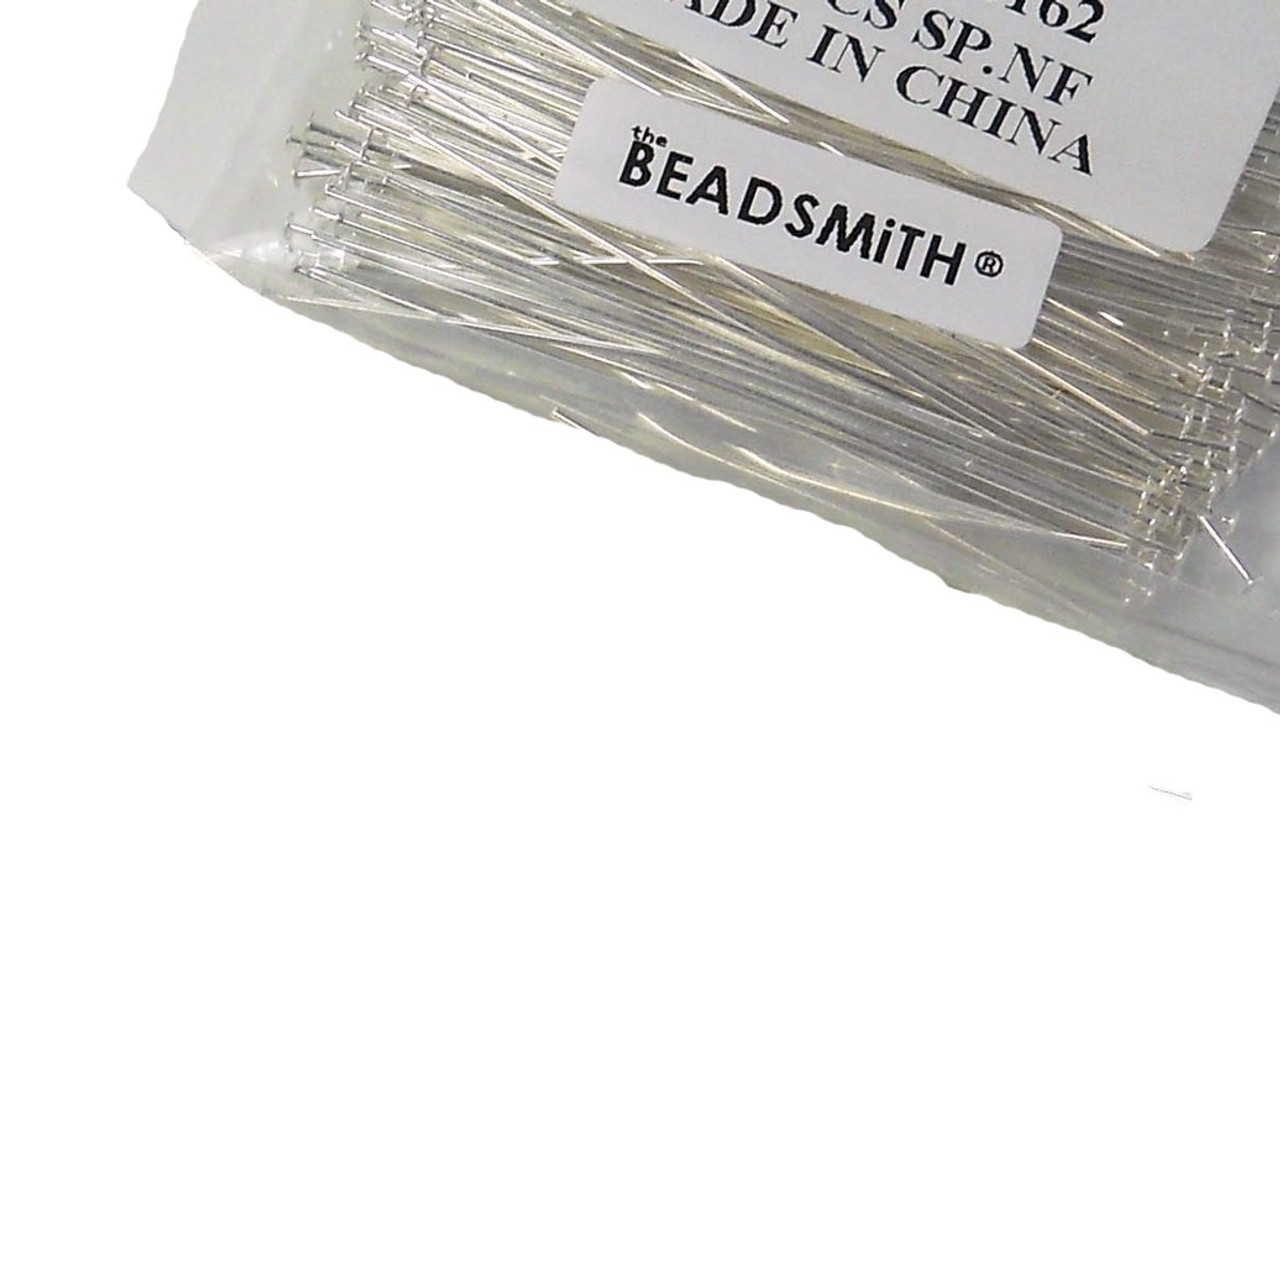 144 Head Pins .029dia X 3 Inch Silver Plating Over Brass Standard 21 Gauge Wire Beadsmith Headpins